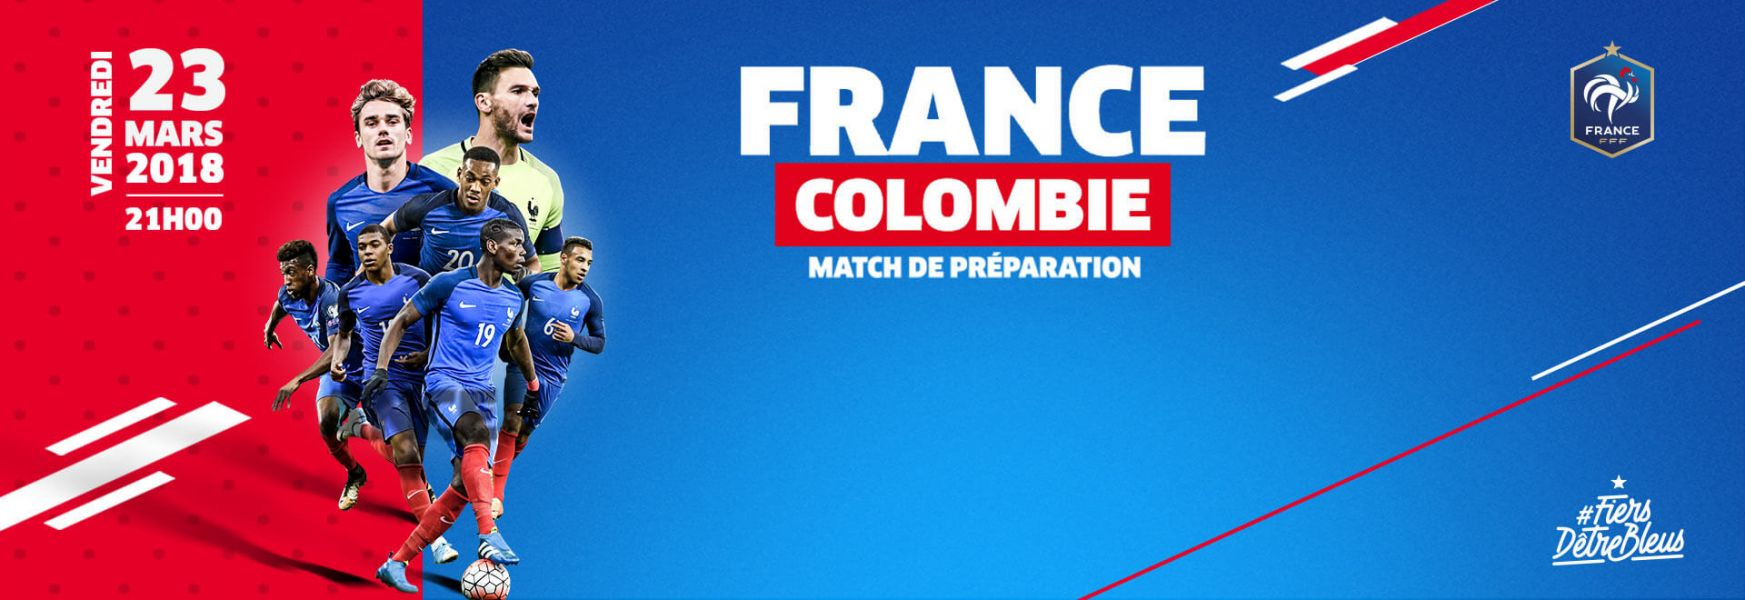 France/Colombie le vendredi 23 mars 2018 au Stade de France